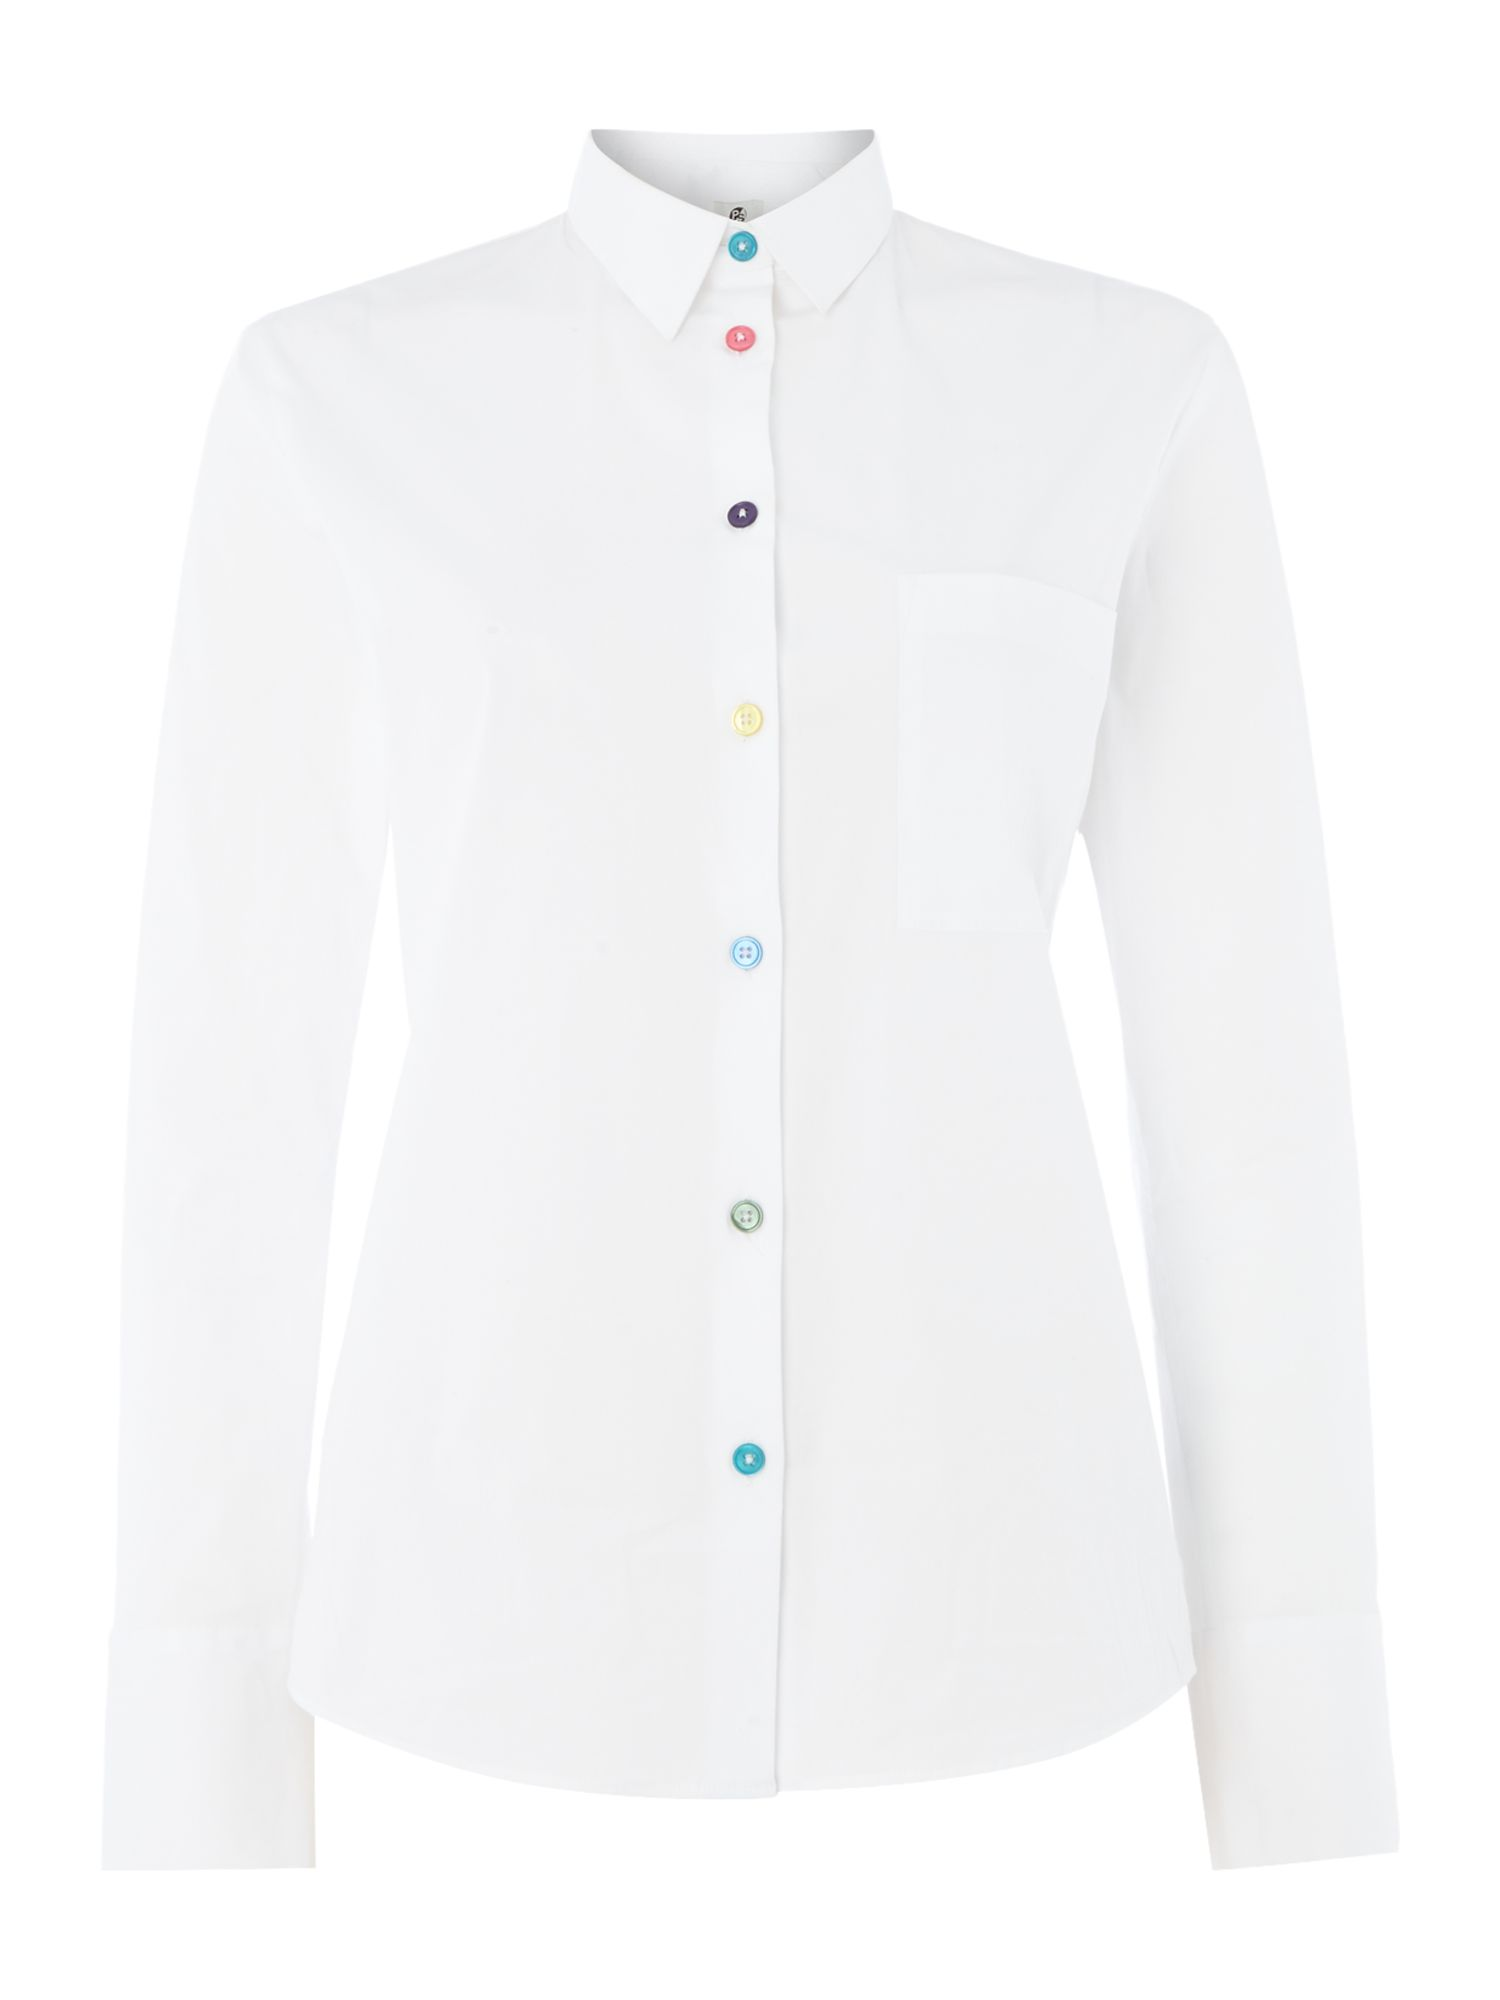 PS By Paul Smith Multi Coloured Button Shirt, White